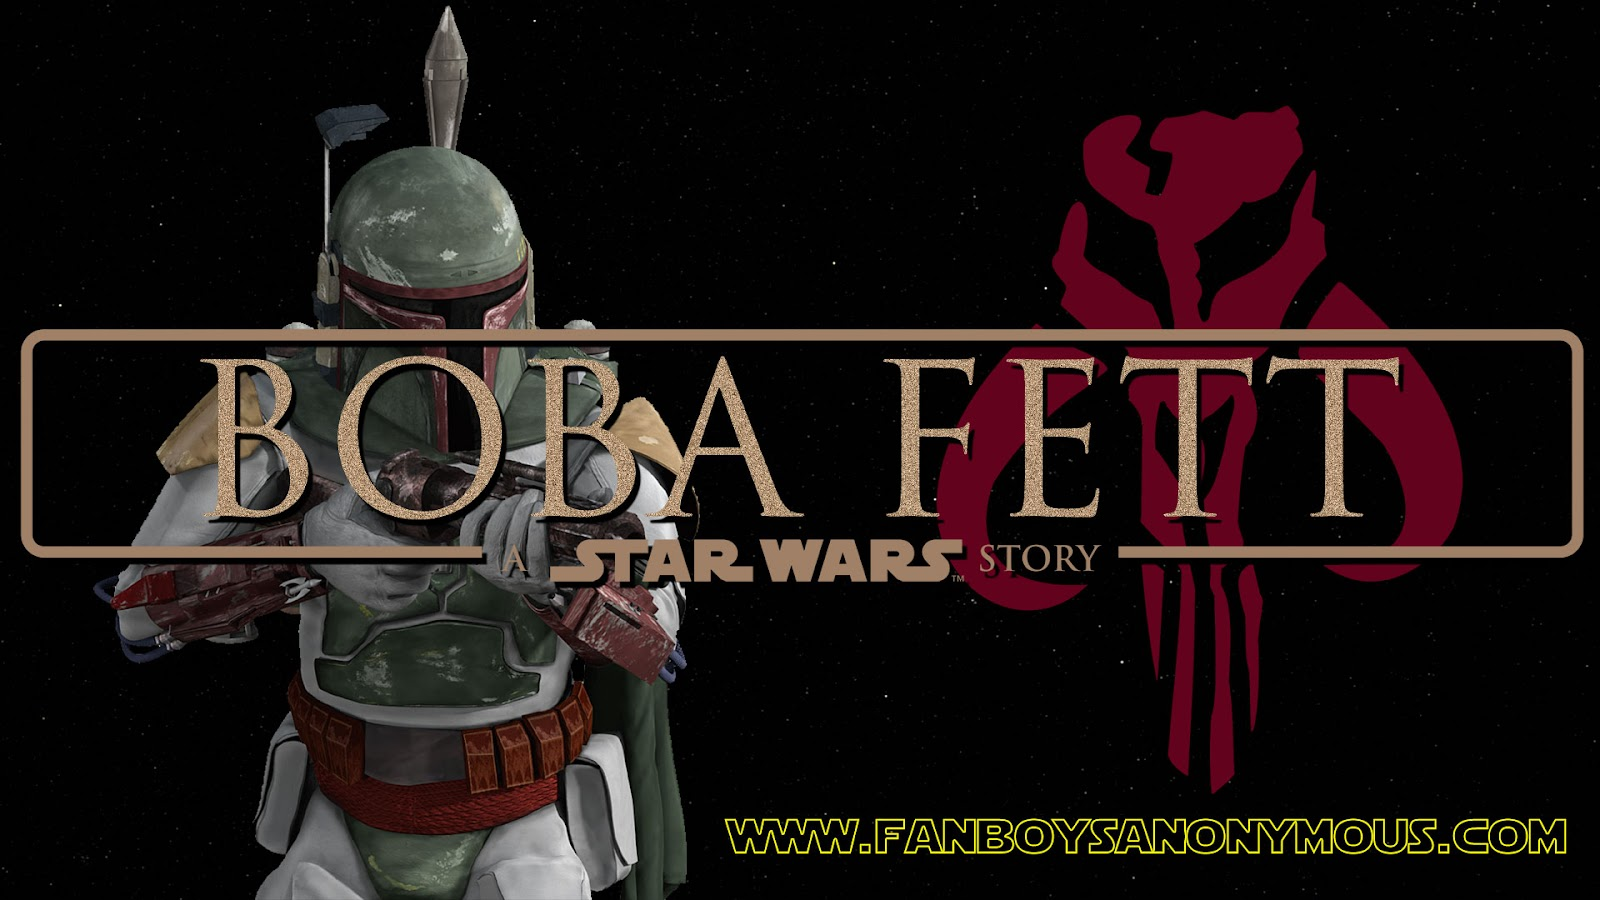 Star Wars Anthology Boba Fett solo movie